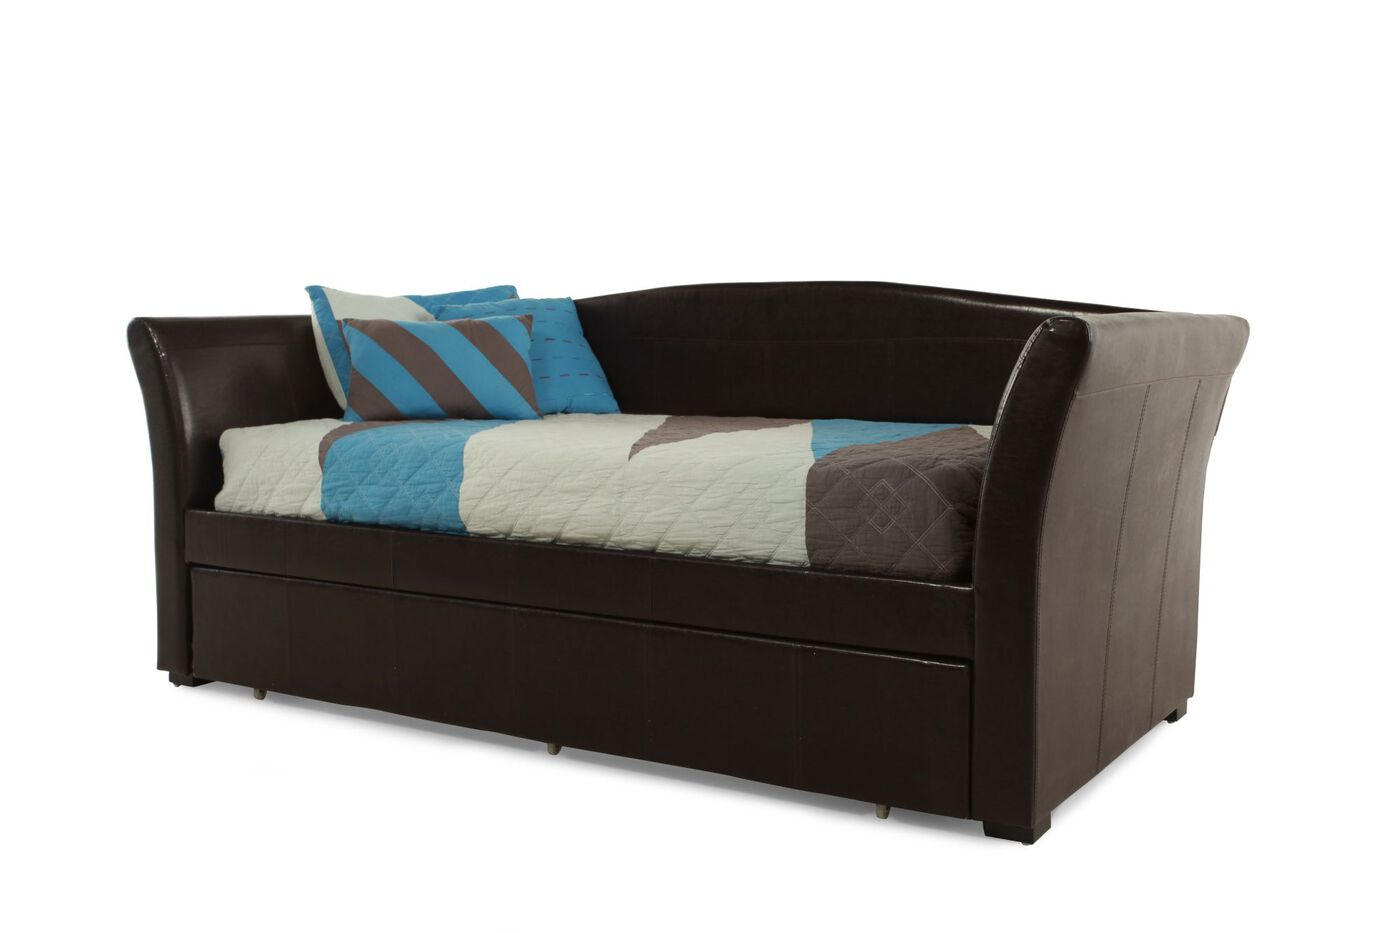 Hillsdale Montgomery Daybed with Trundle - Hillsdale Montgomery Daybed With Trundle Mathis Brothers Furniture